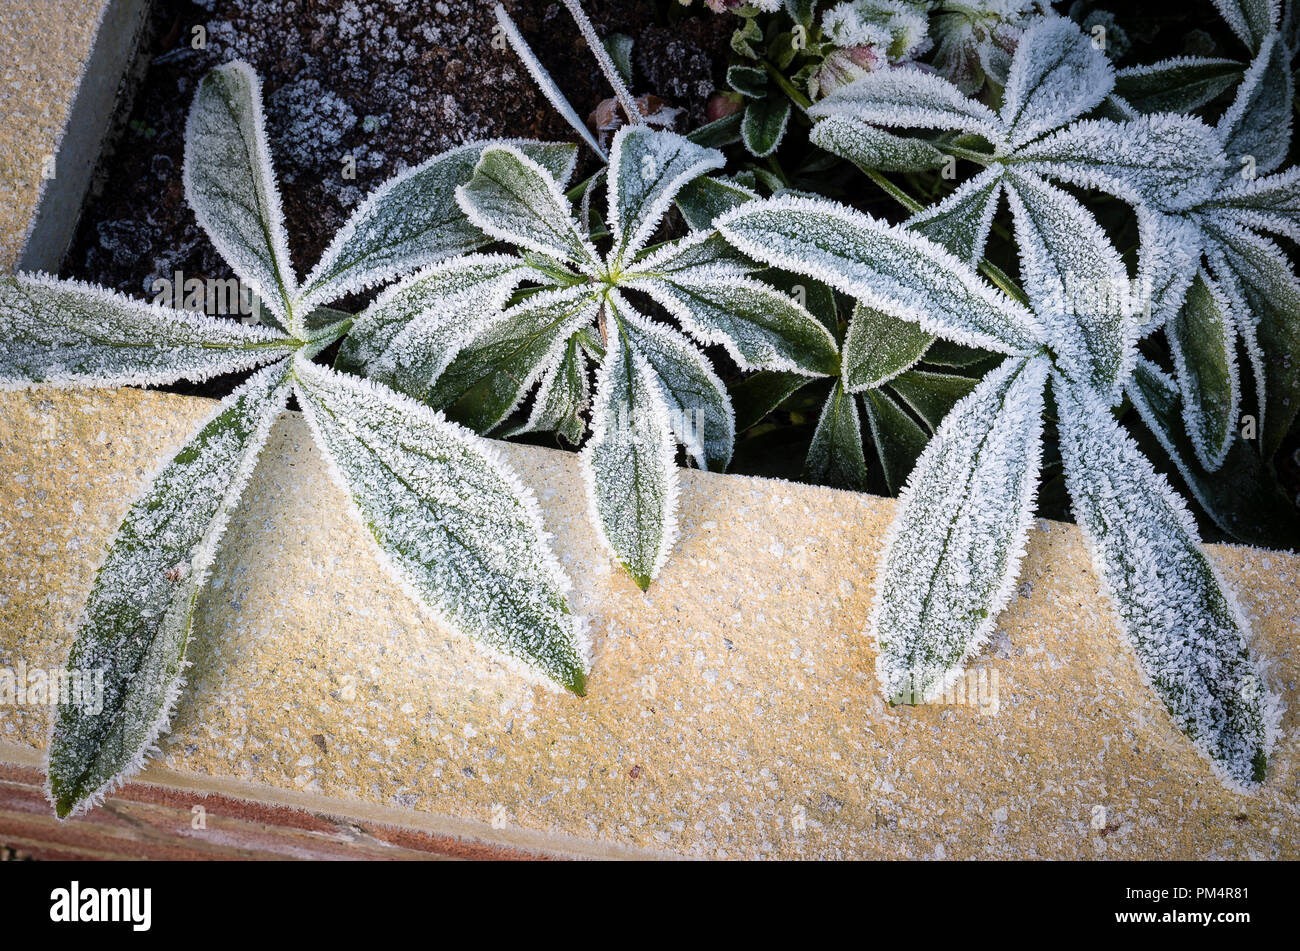 Overnight frost adds a decorative touch to the leaves of Helleborus plants in a raised planter in UK - Stock Image